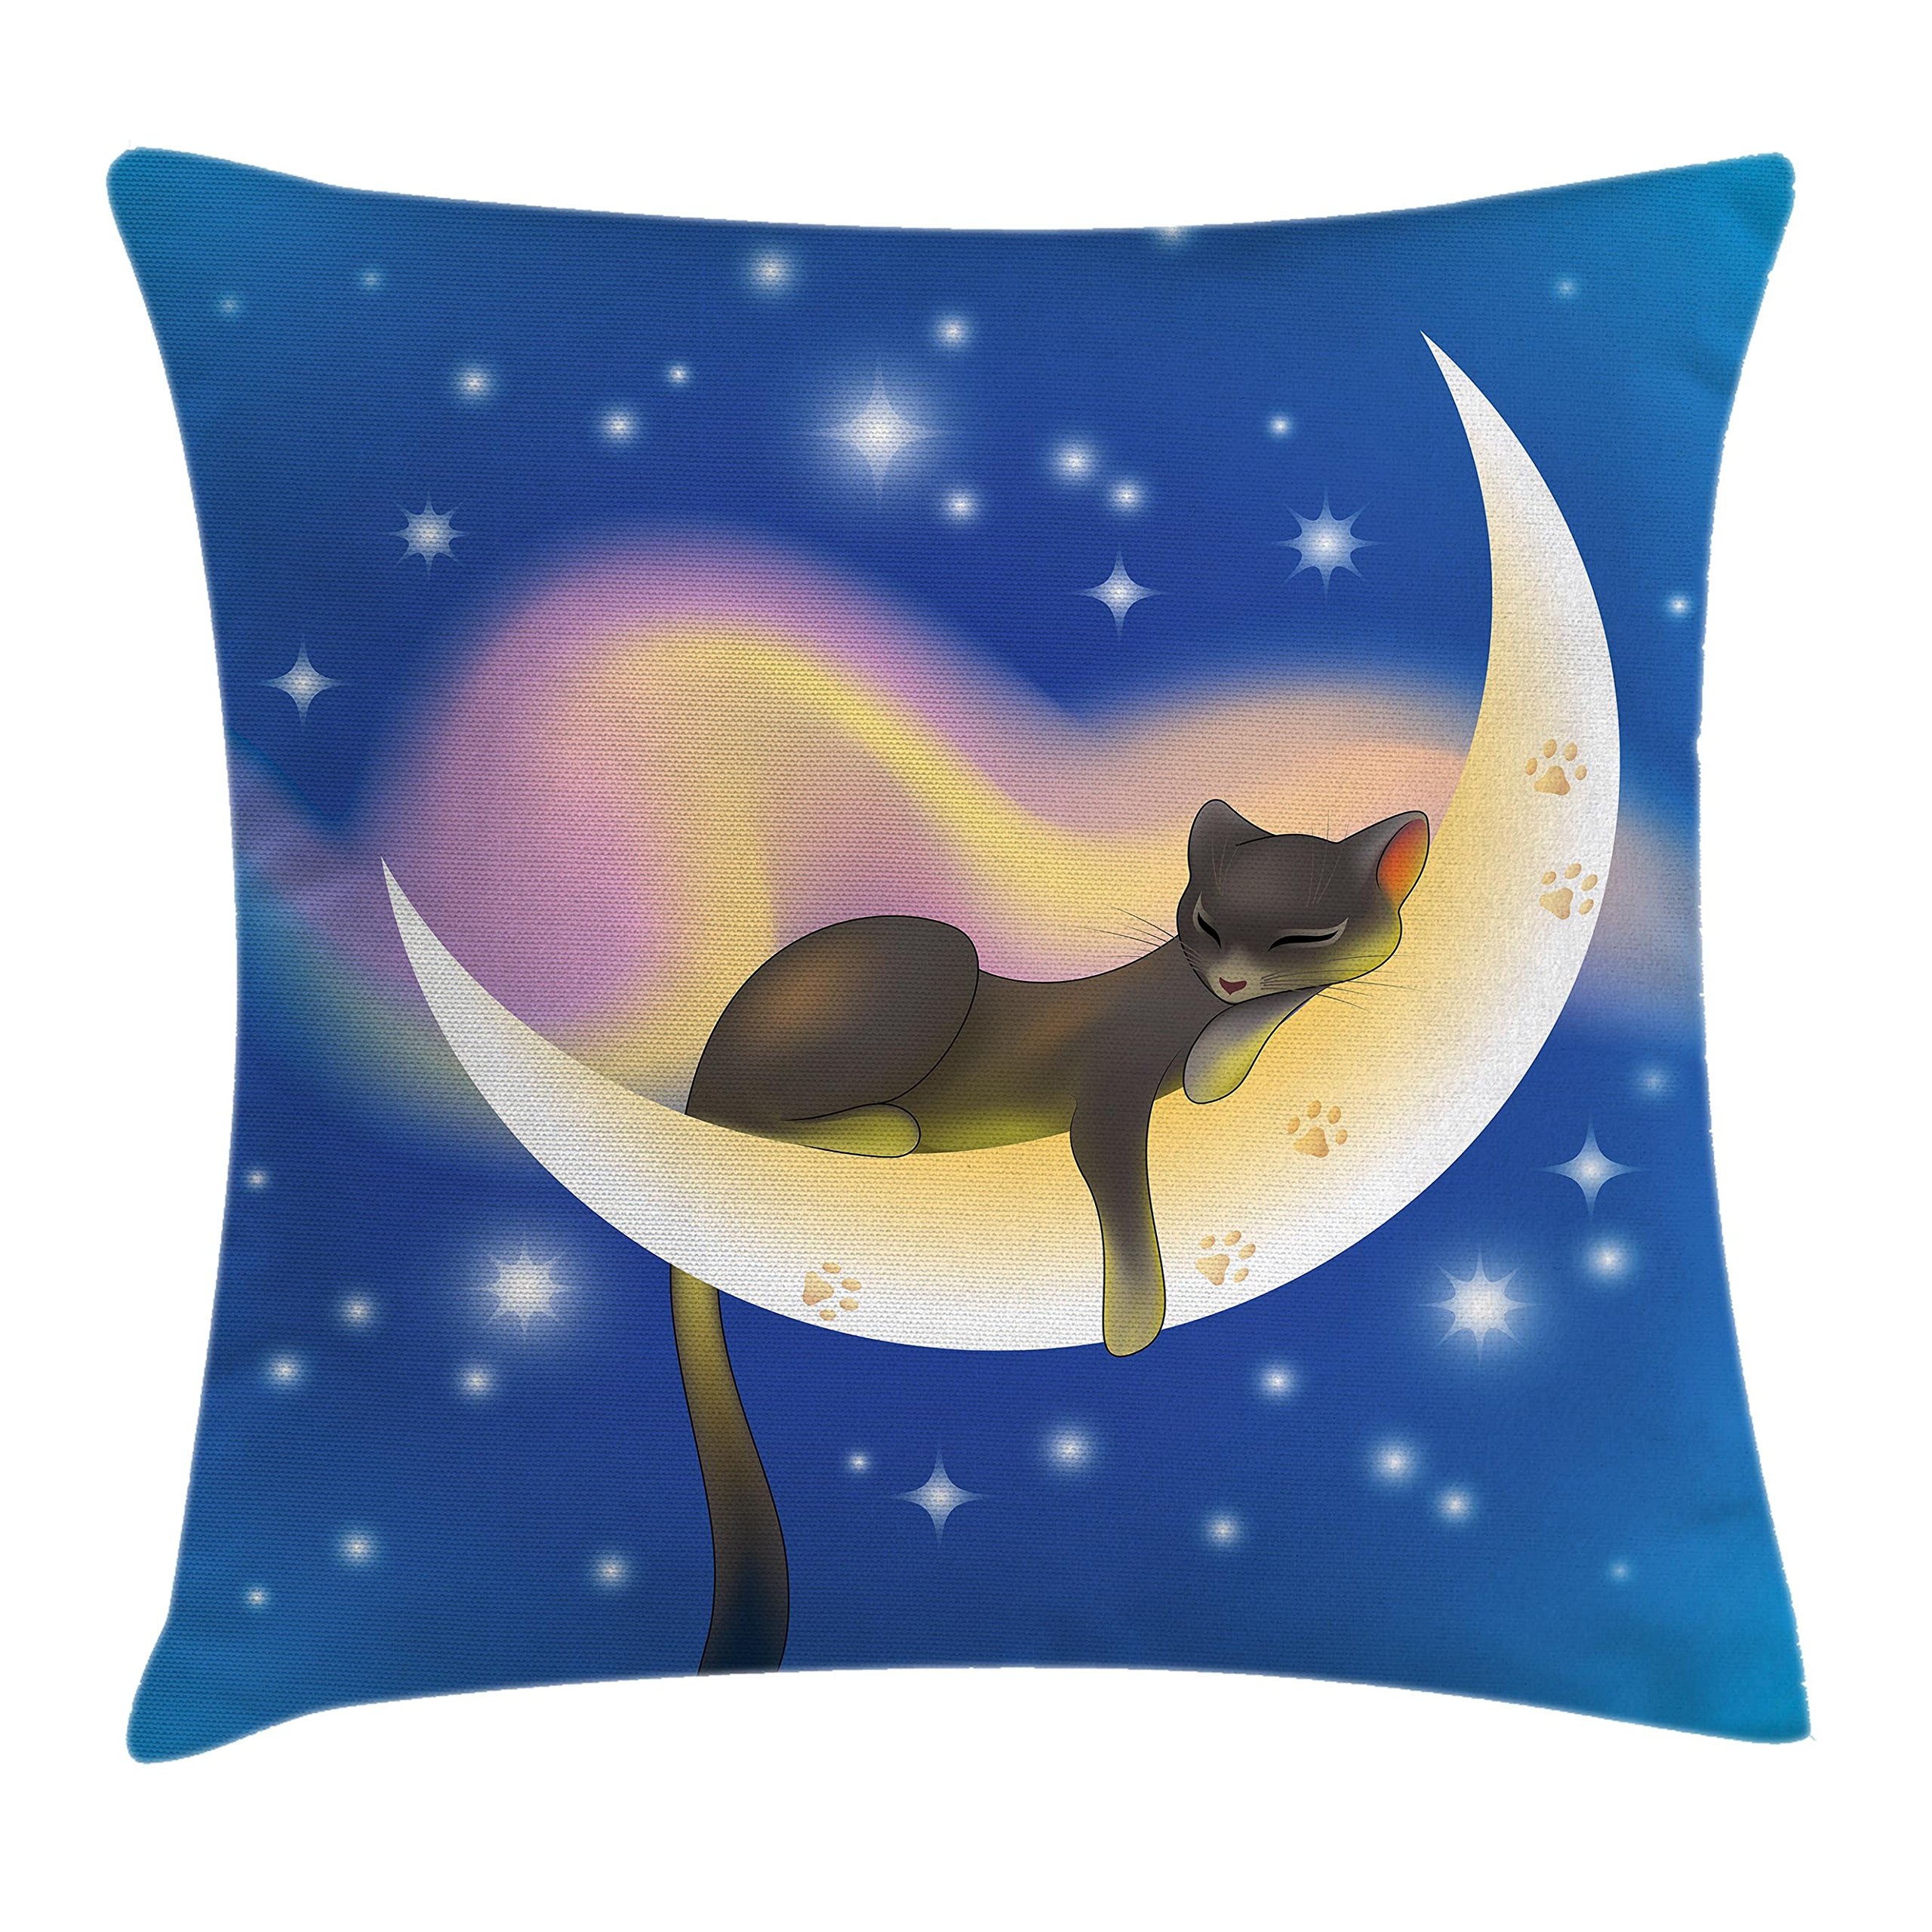 Ambesonne Cat Throw Pillow Cushion Cover, Cat Sleeping on Crescent Moon Stars Night Sweet Dreams Themed Kids Nursery Design, Decorative Square Accent Pillow Case, 20 X 20 Inches, Blue Yellow